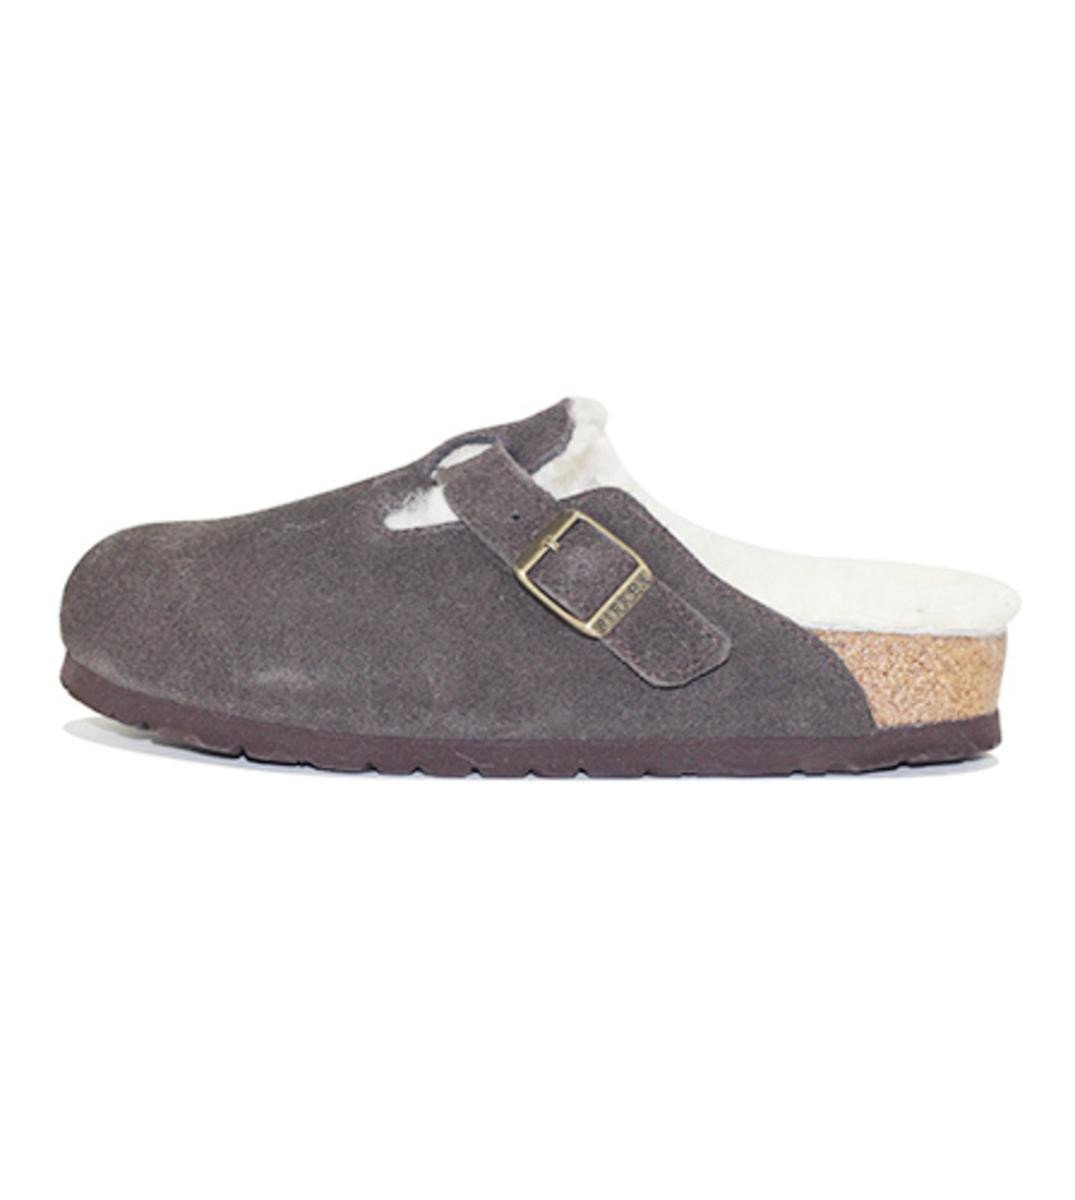 Birkenstocks for Women: Boston Fur Suede Mocha Sandal